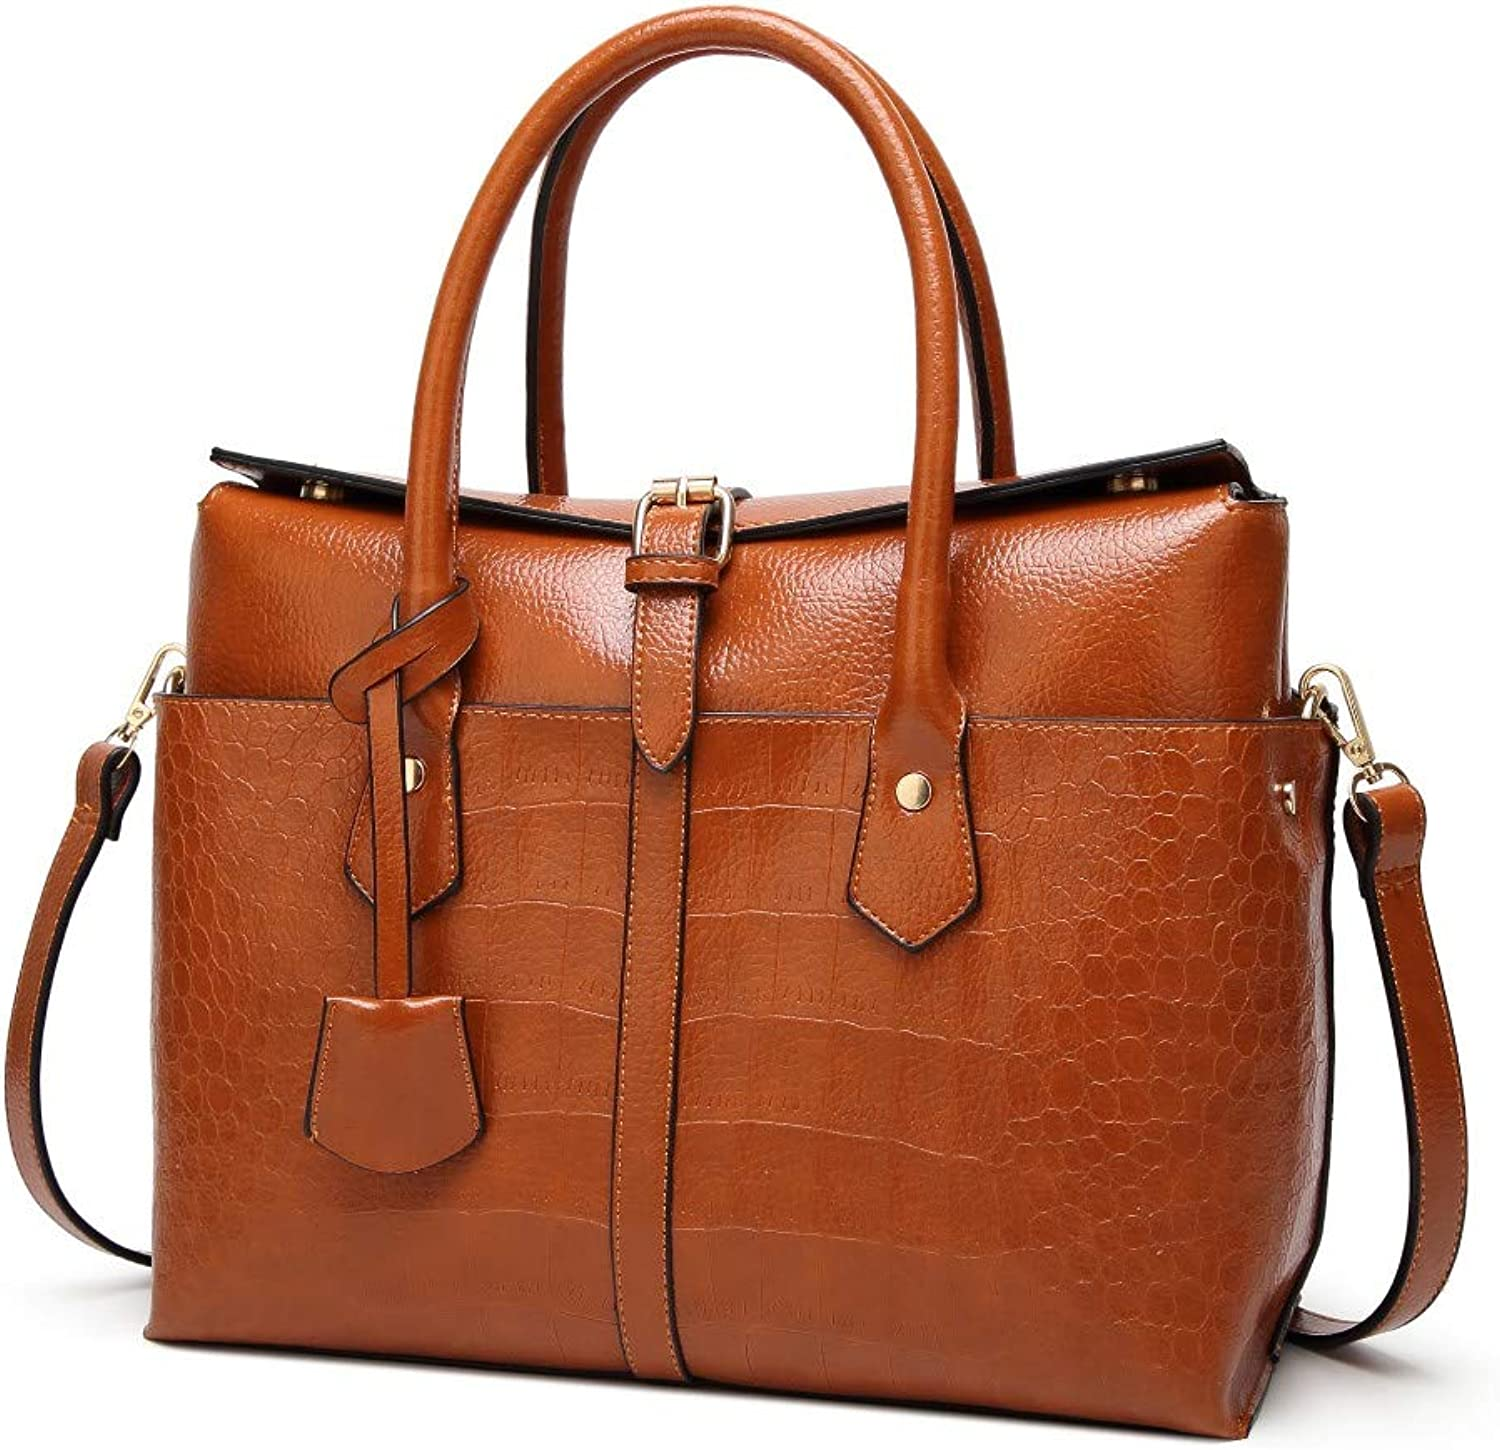 Shoulder Bag,Women Vintage Handbag,Ladies CrossBody Bag Casual Tote,Female Fashion Crocodile Pattern Messenger Bag TopHandle Bags Large Capacity Brown